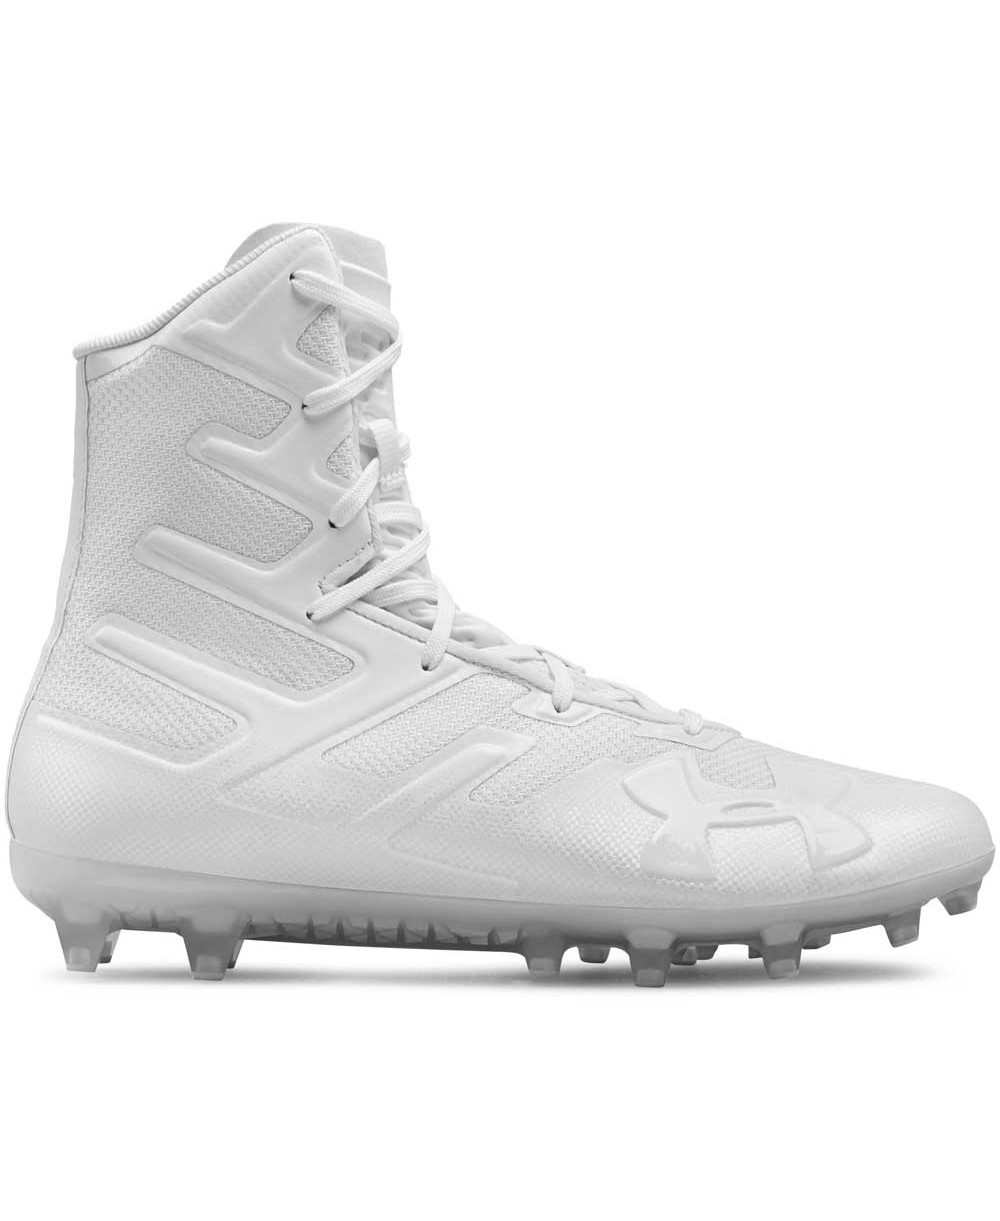 68ef48b00fc86 Under Armour Highlight MC Zapatos de Fútbol Americano para Hombre W...